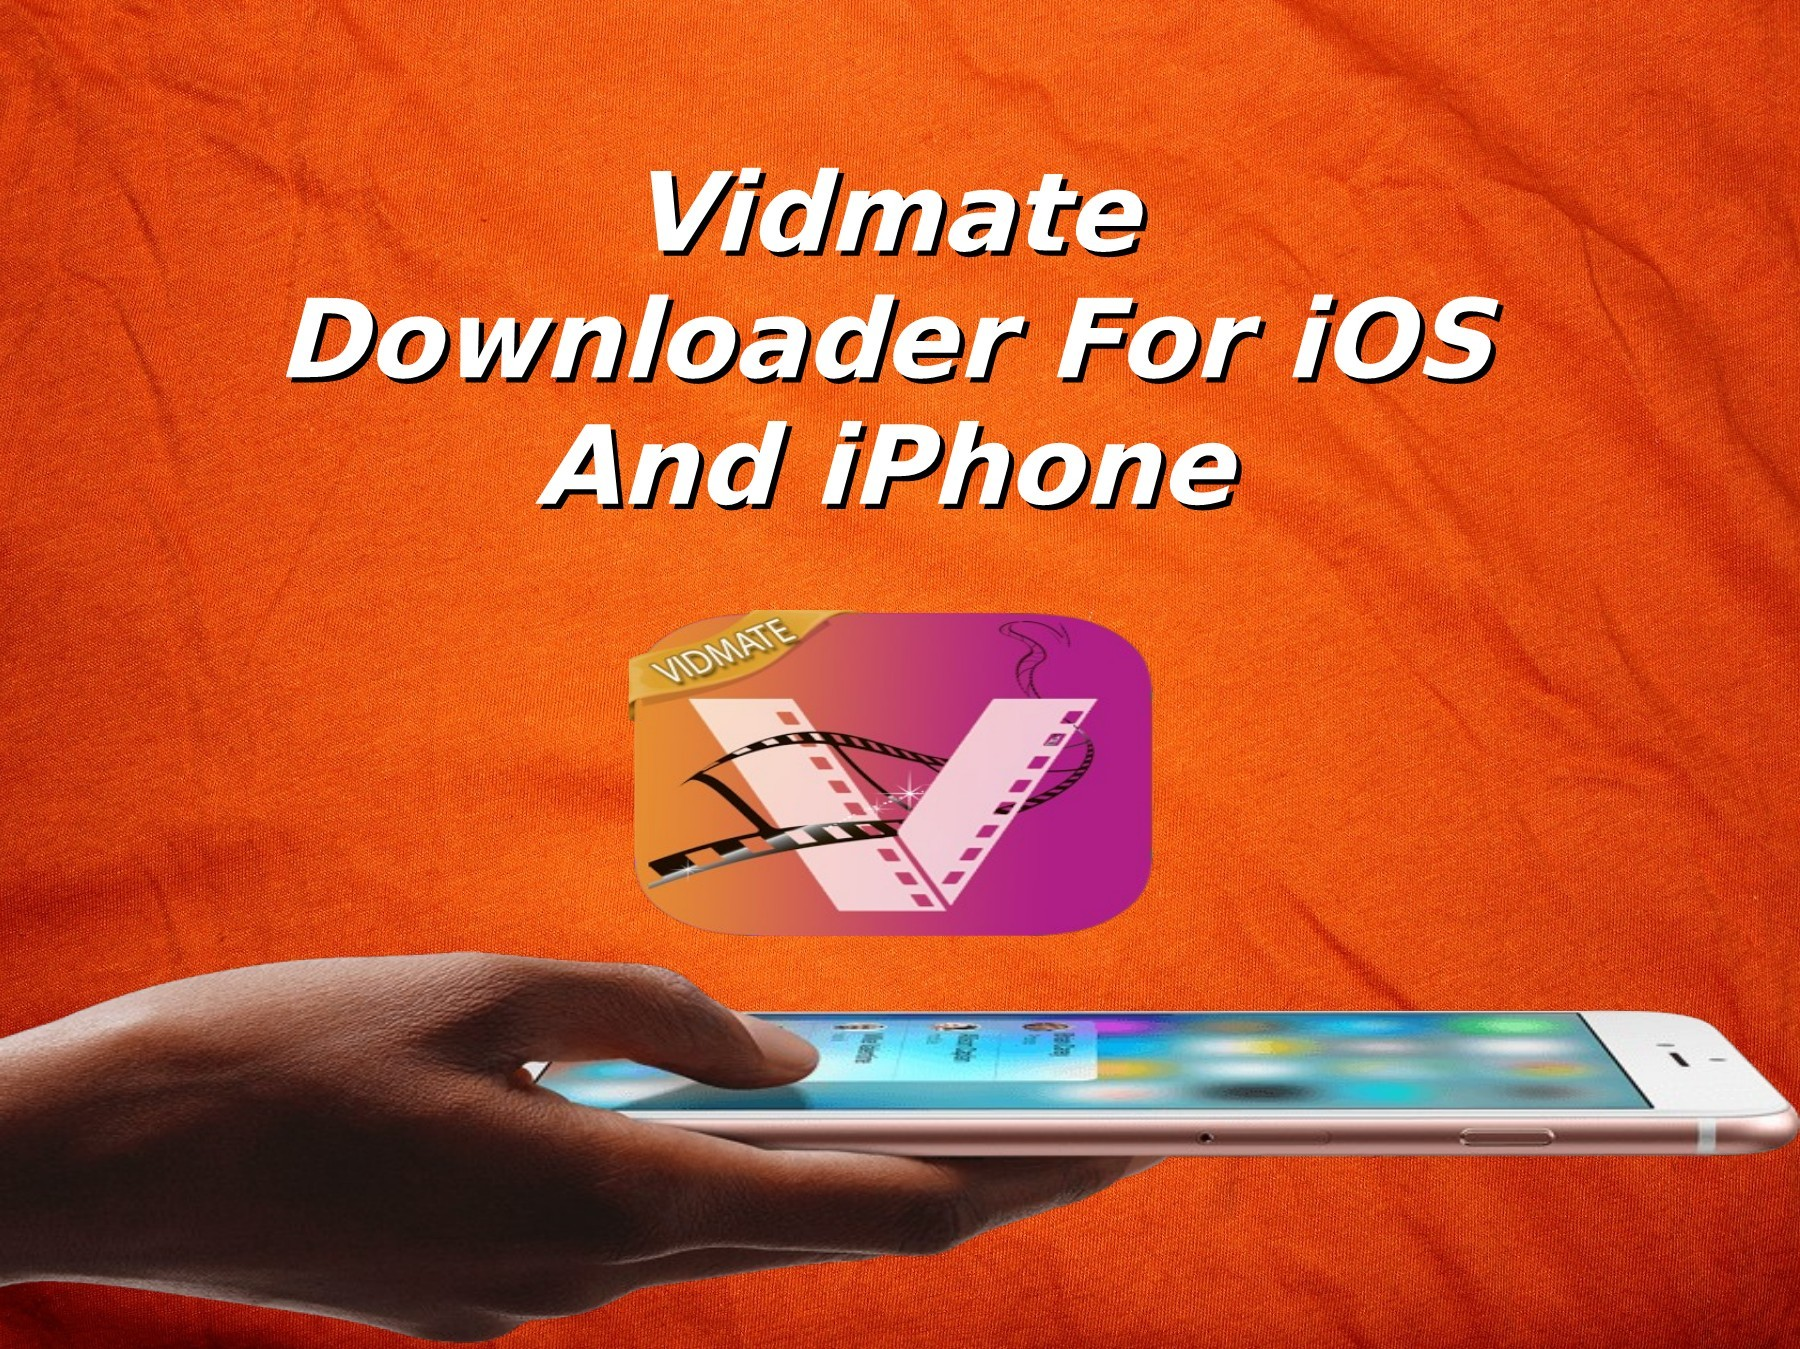 Vidmate Downloader For iOS And iPhone | PubHTML5